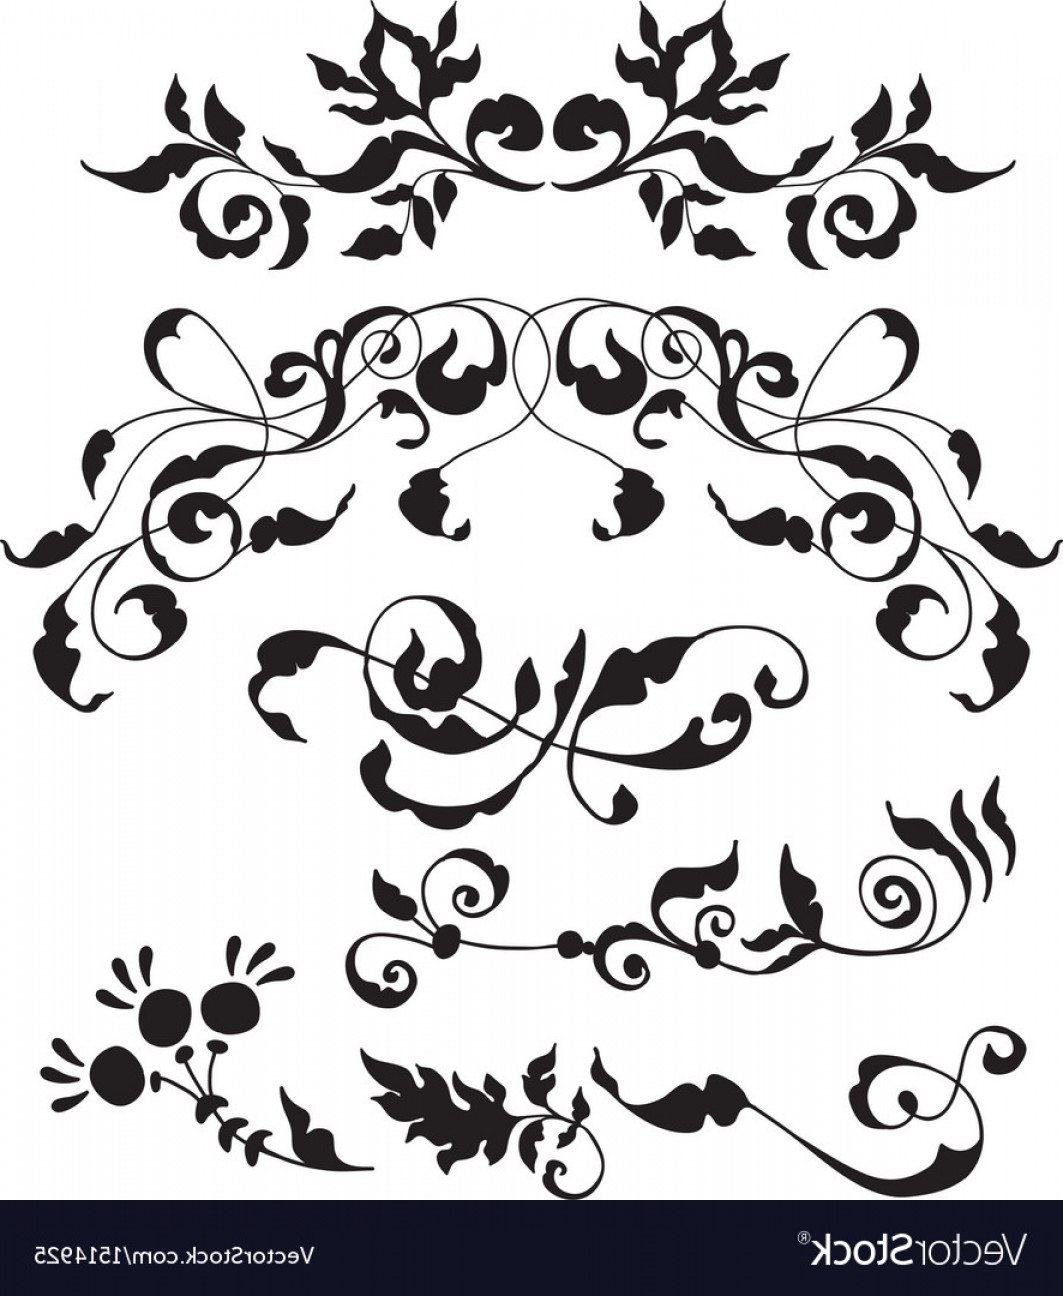 Flower Elements Vector: Set Of Decorative Floral Elements Vector